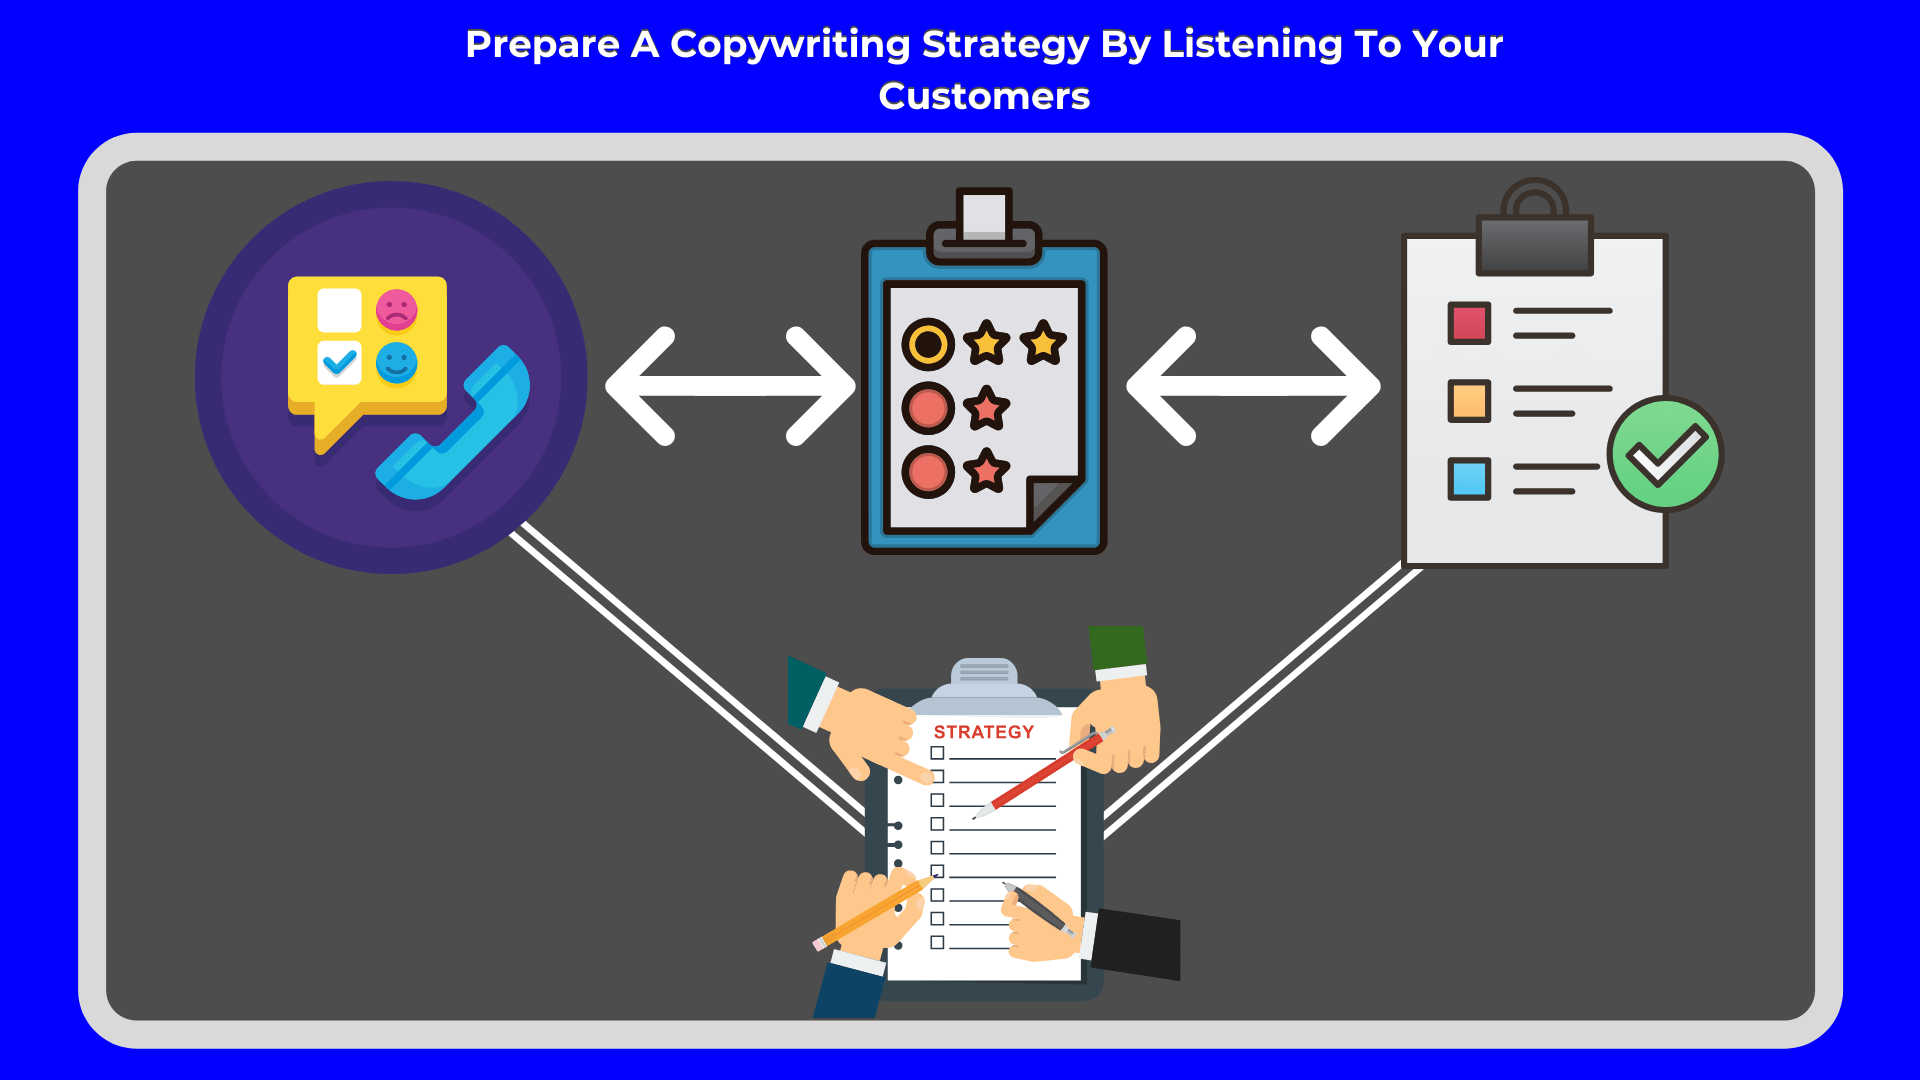 Copywriting-Strategy-By-Listening-To-Your-Customers